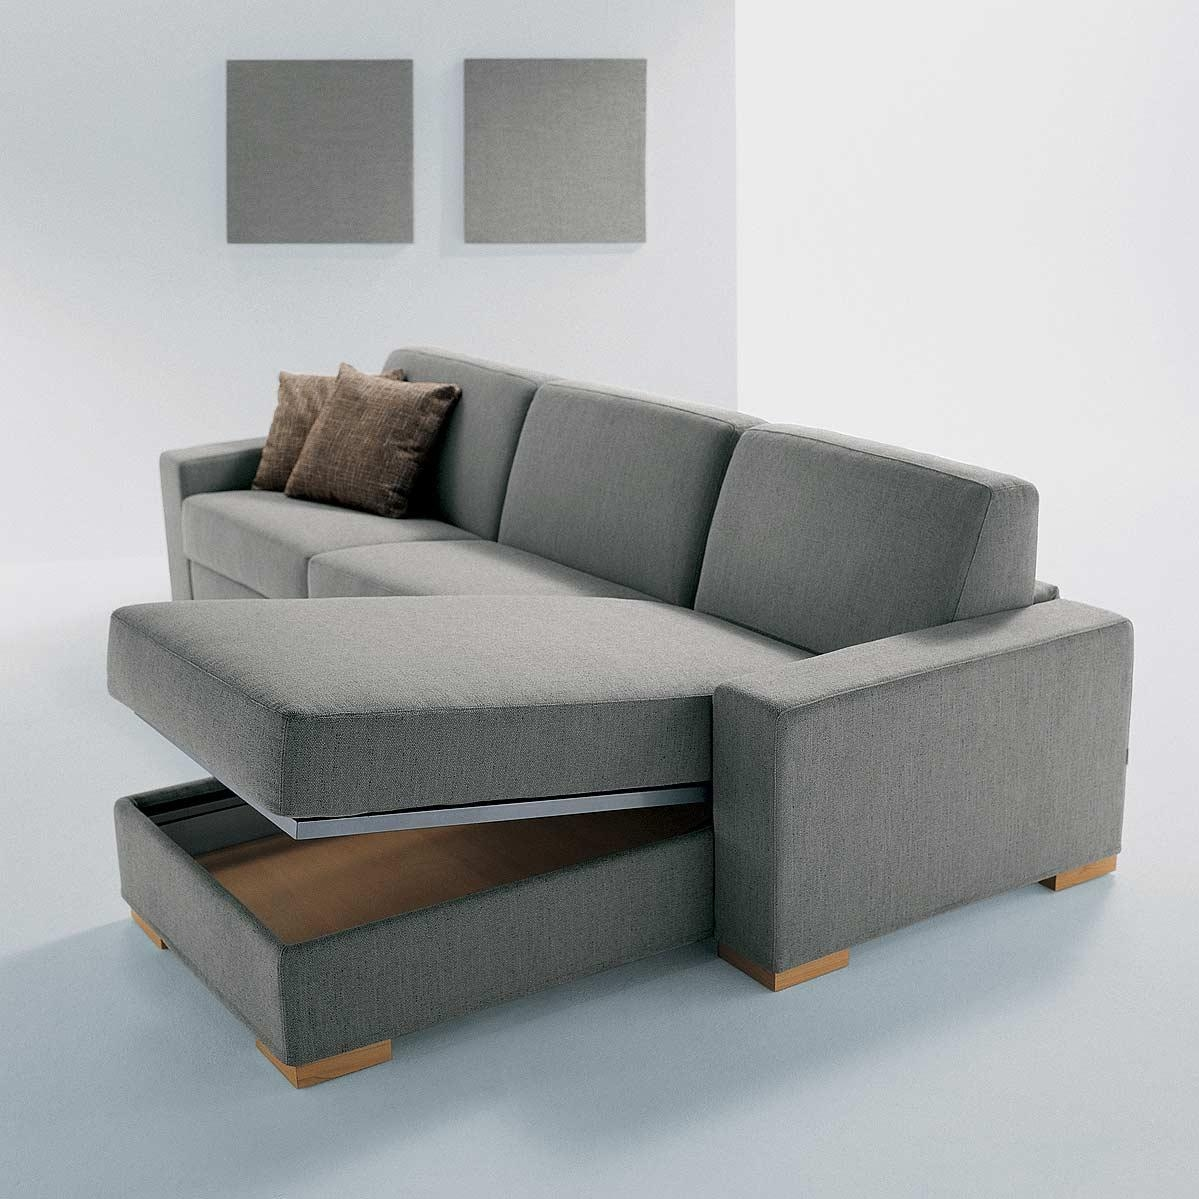 Convertible Sofa Bed With Storage – S3Net – Sectional Sofas Sale With Regard To Sectional Sofa Bed With Storage (View 13 of 20)